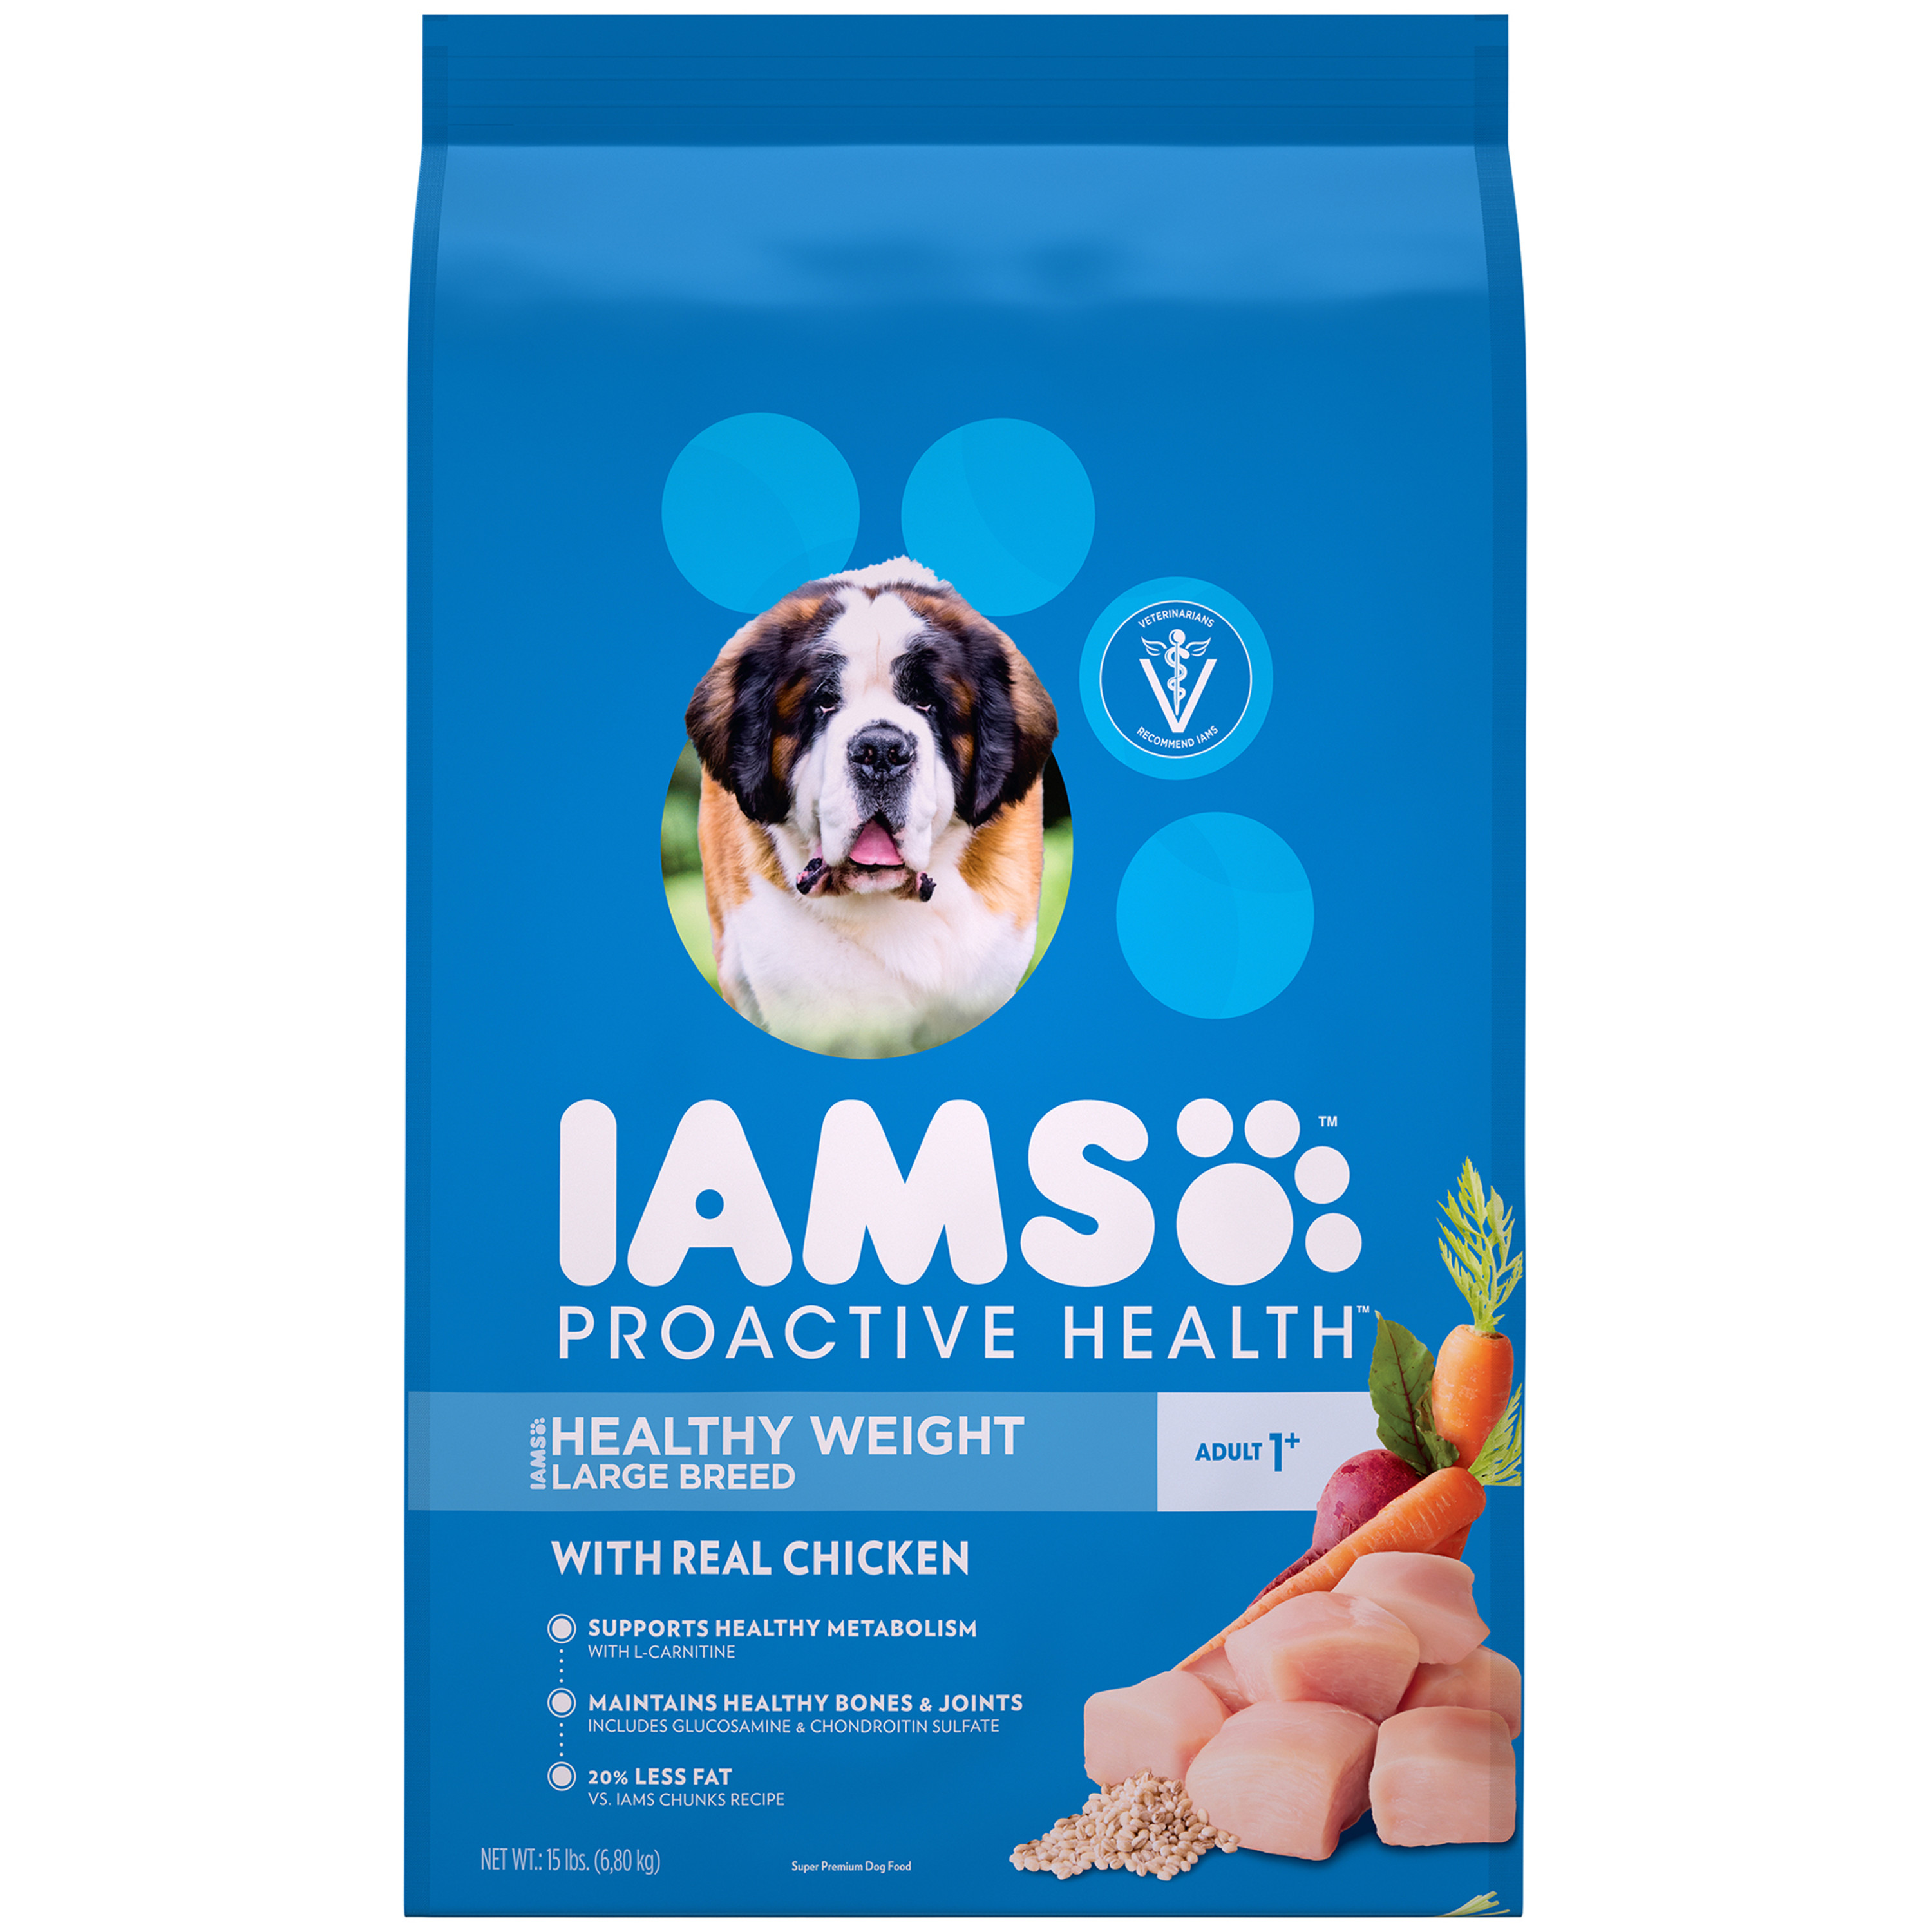 Iams Proactive Health Large Breed Healthy Weight Dry Dog Food, Chicken, 15 Lb Bag